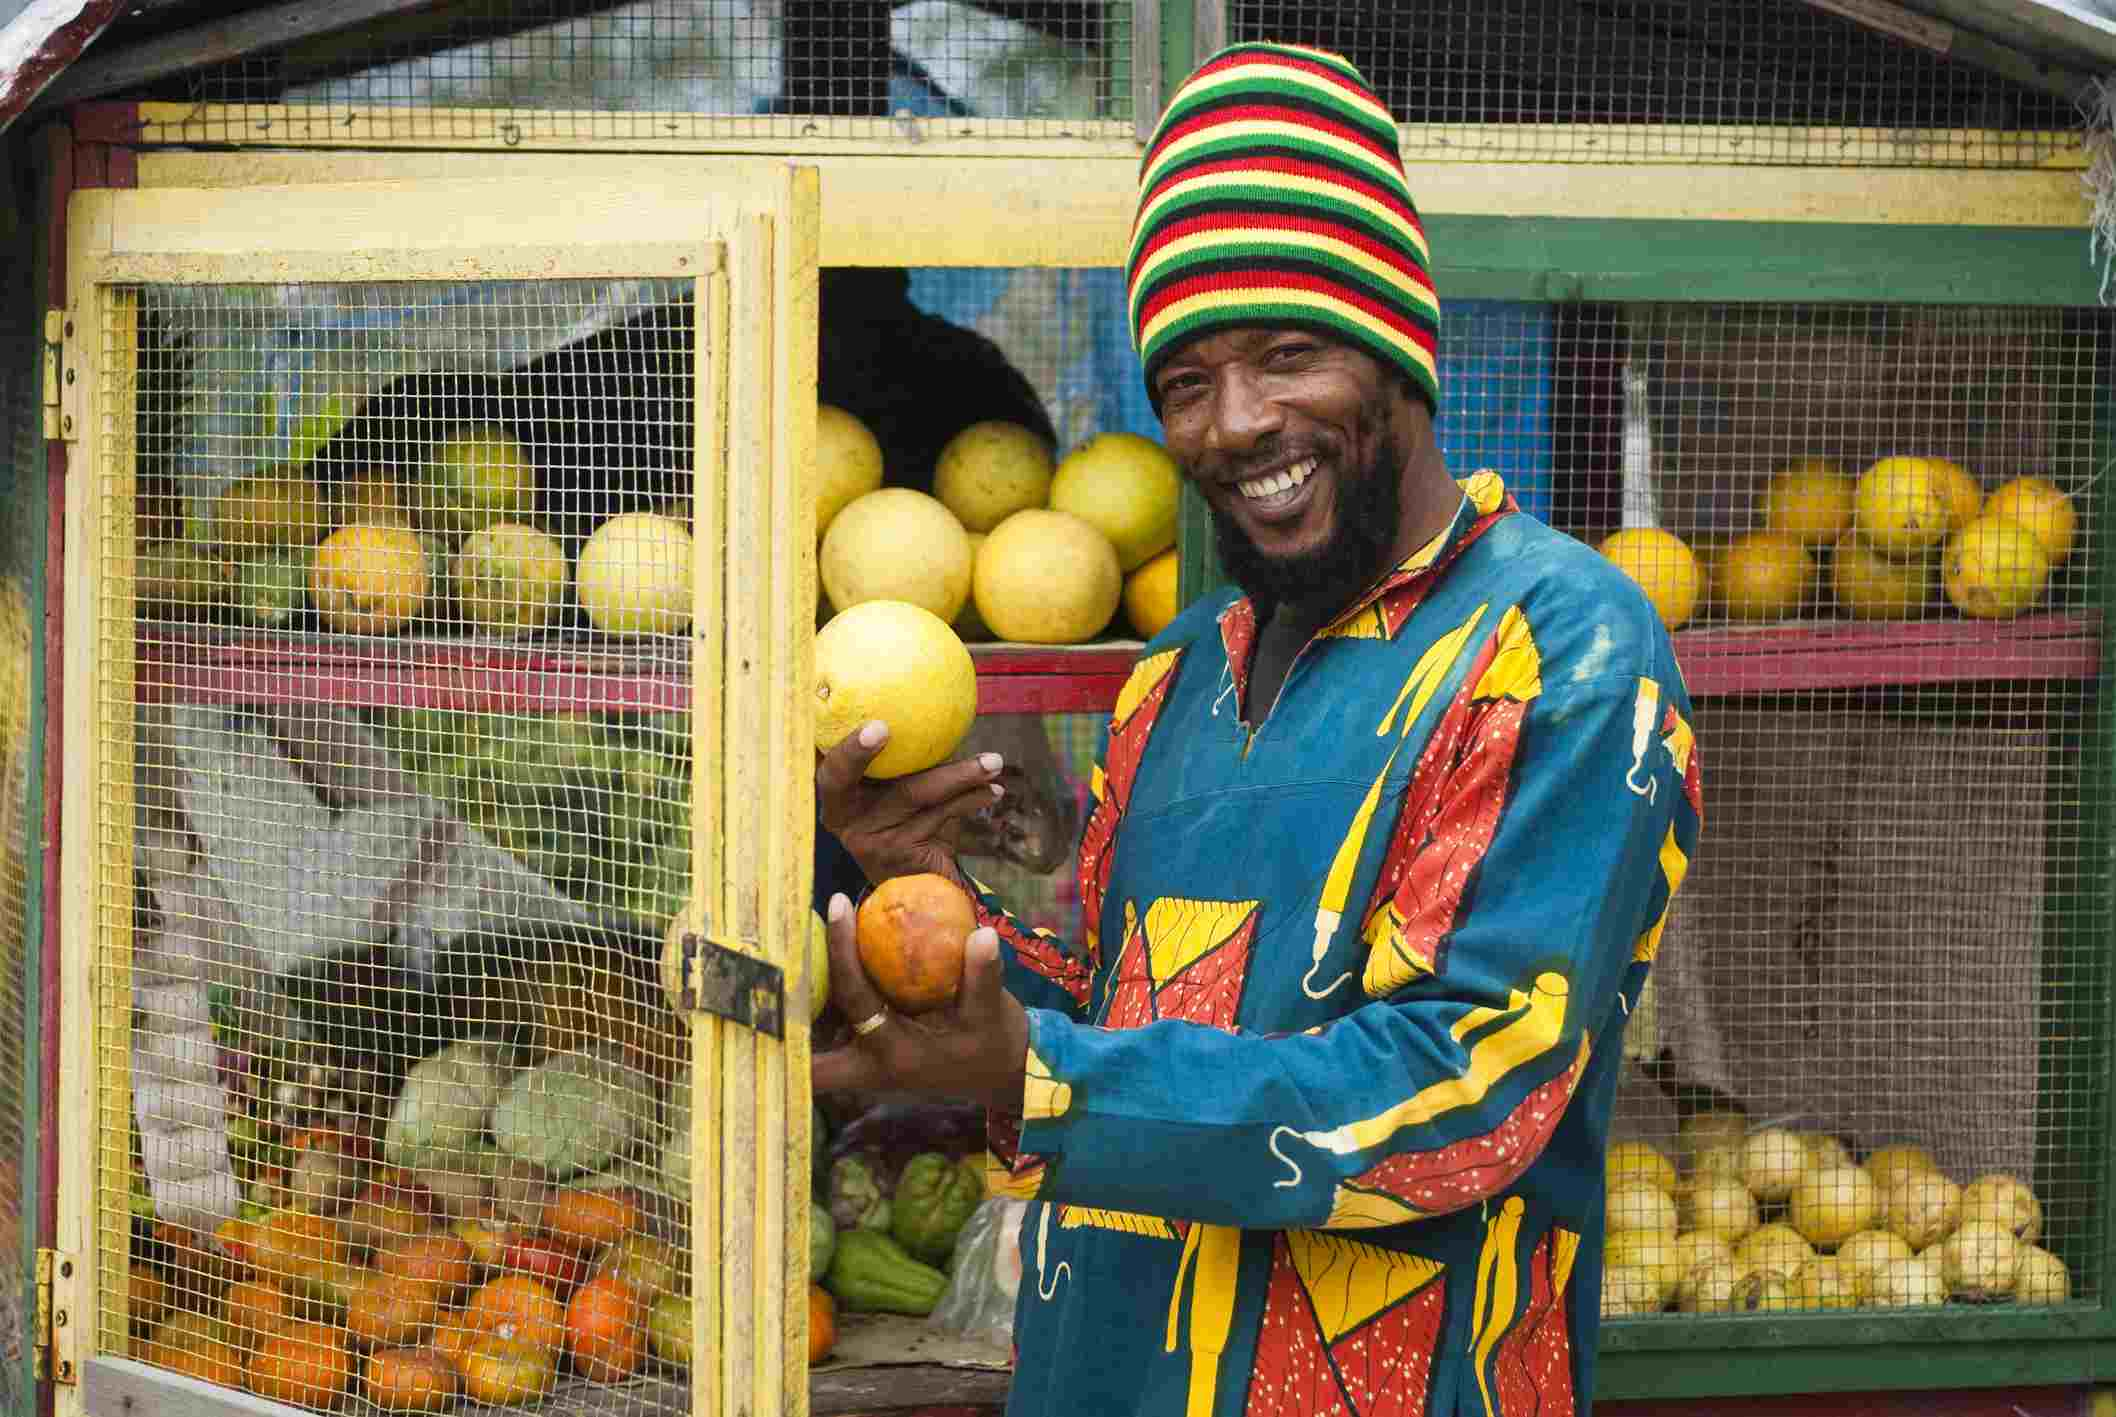 Reggae musician 'Sugar B' at Tony's Fruit Stand in West End.